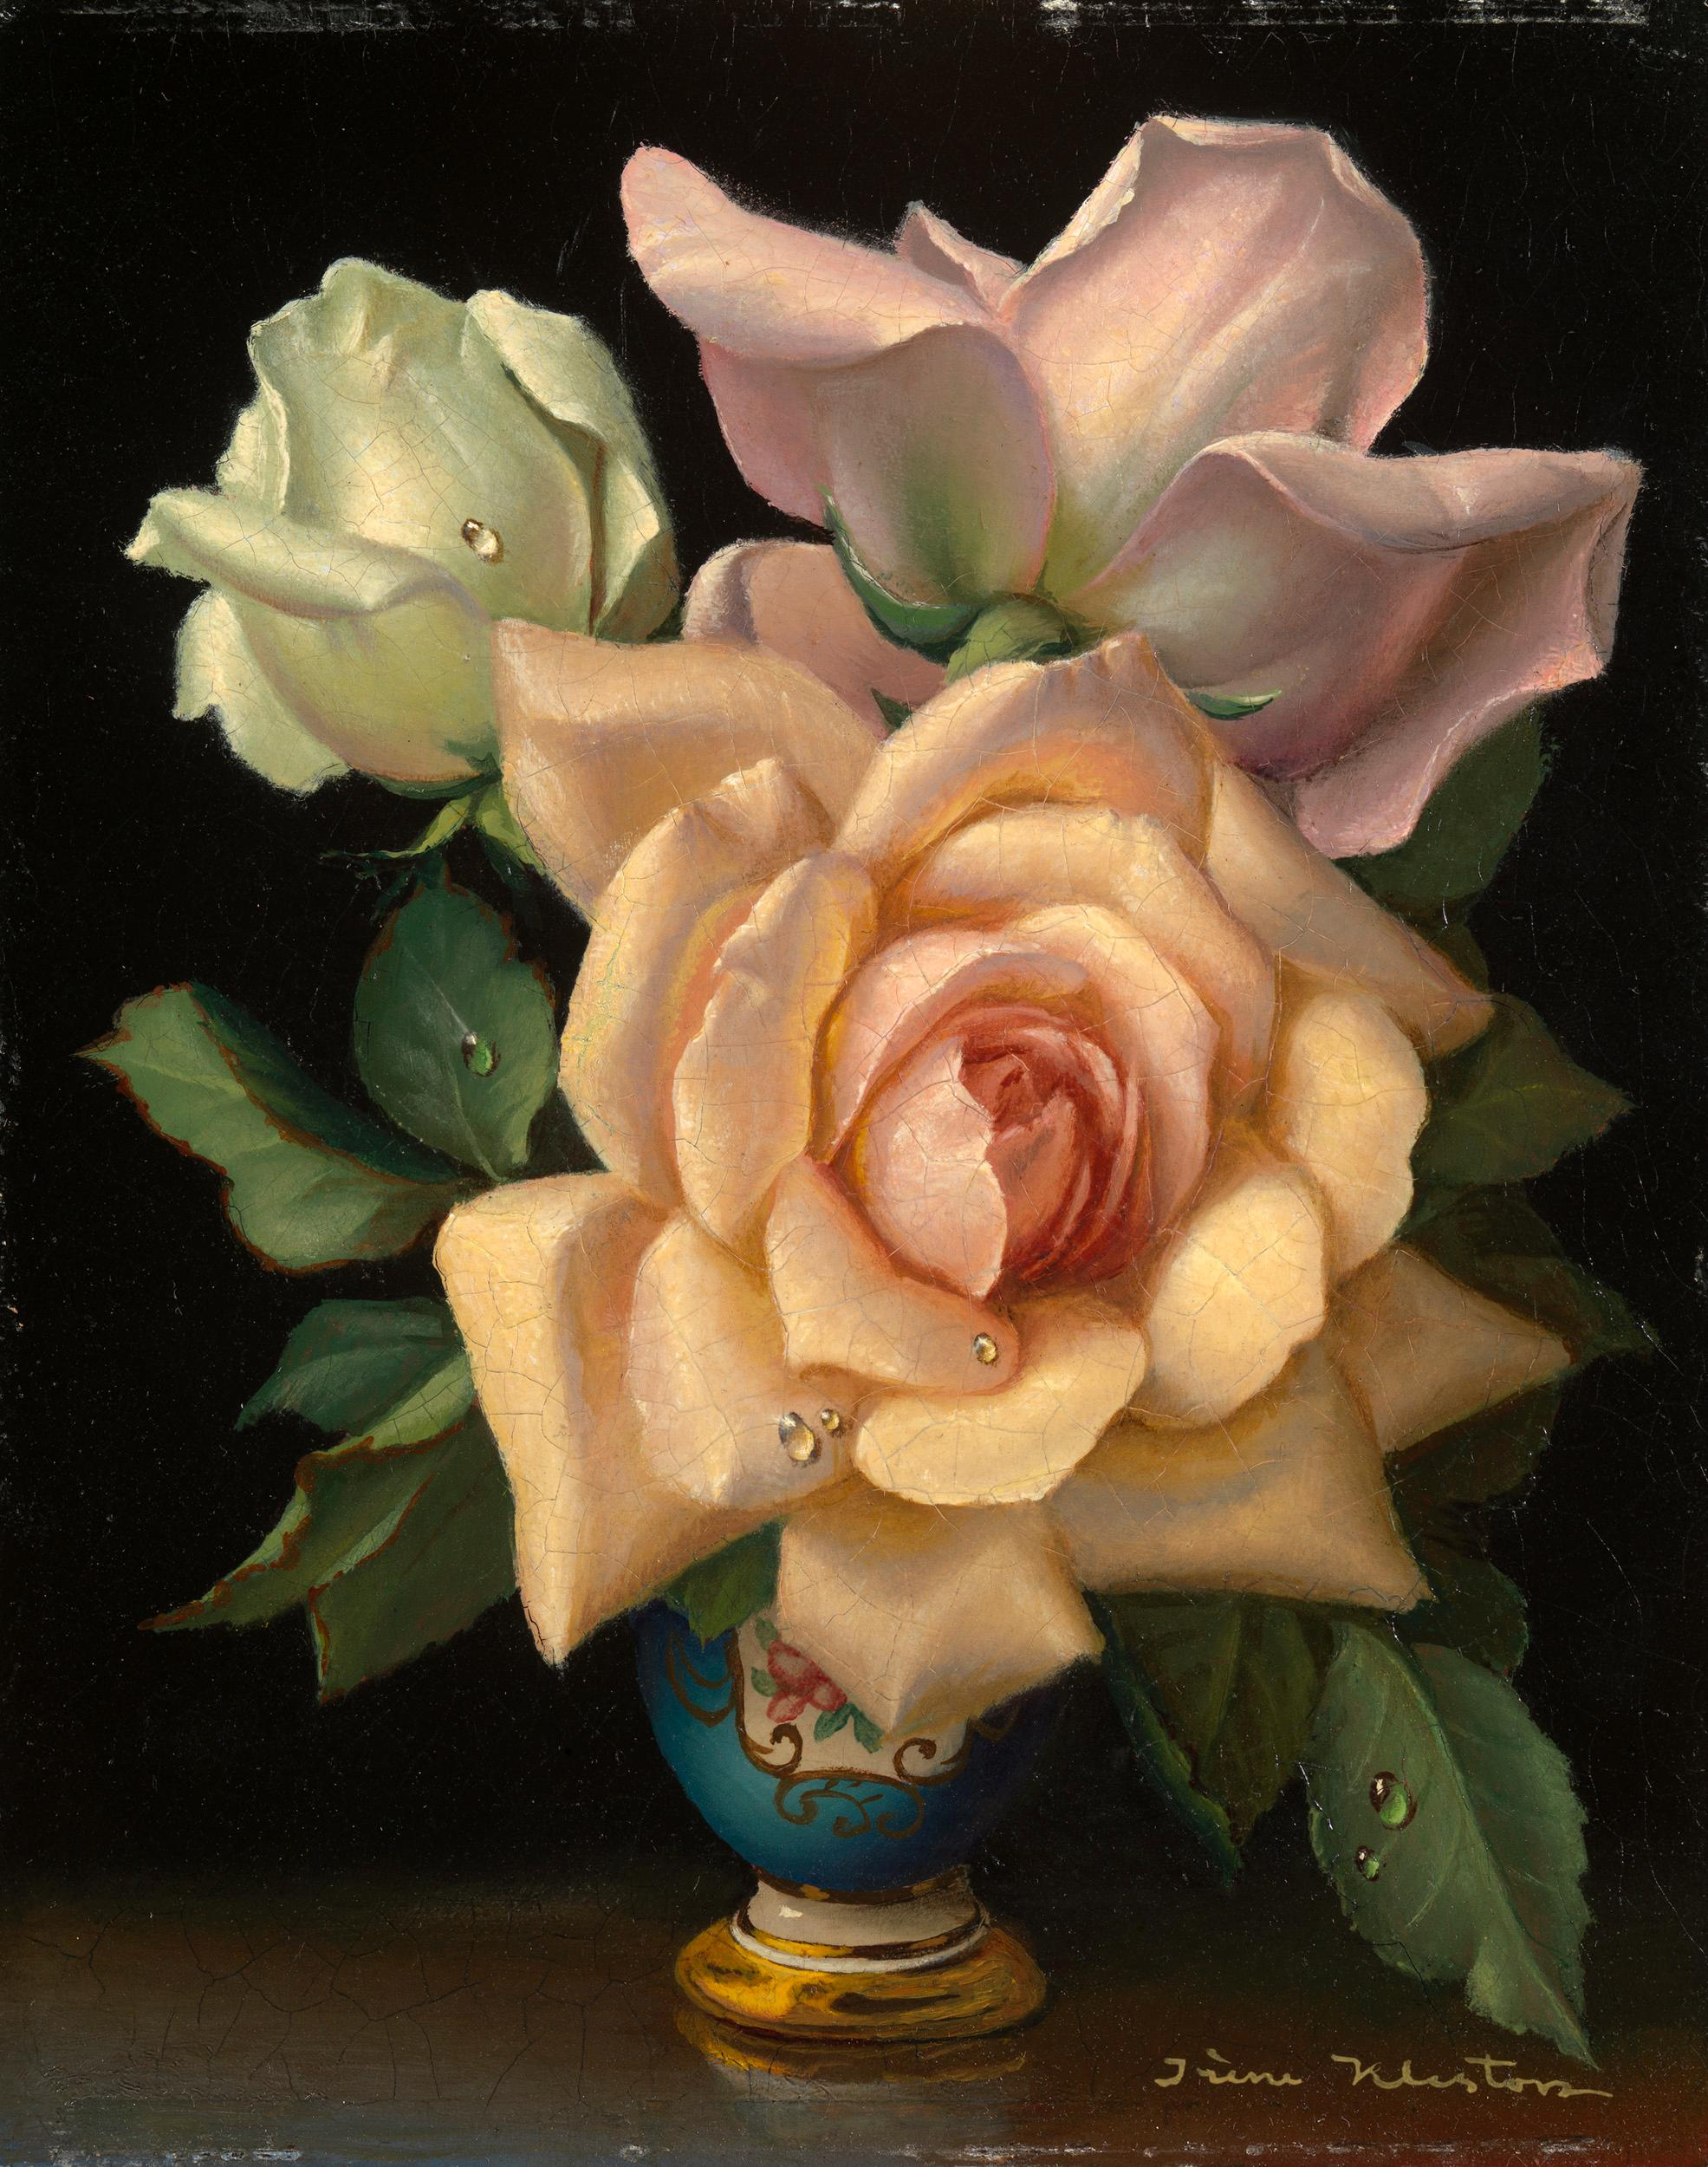 White, Pink and Peach Roses by Irene Klestova